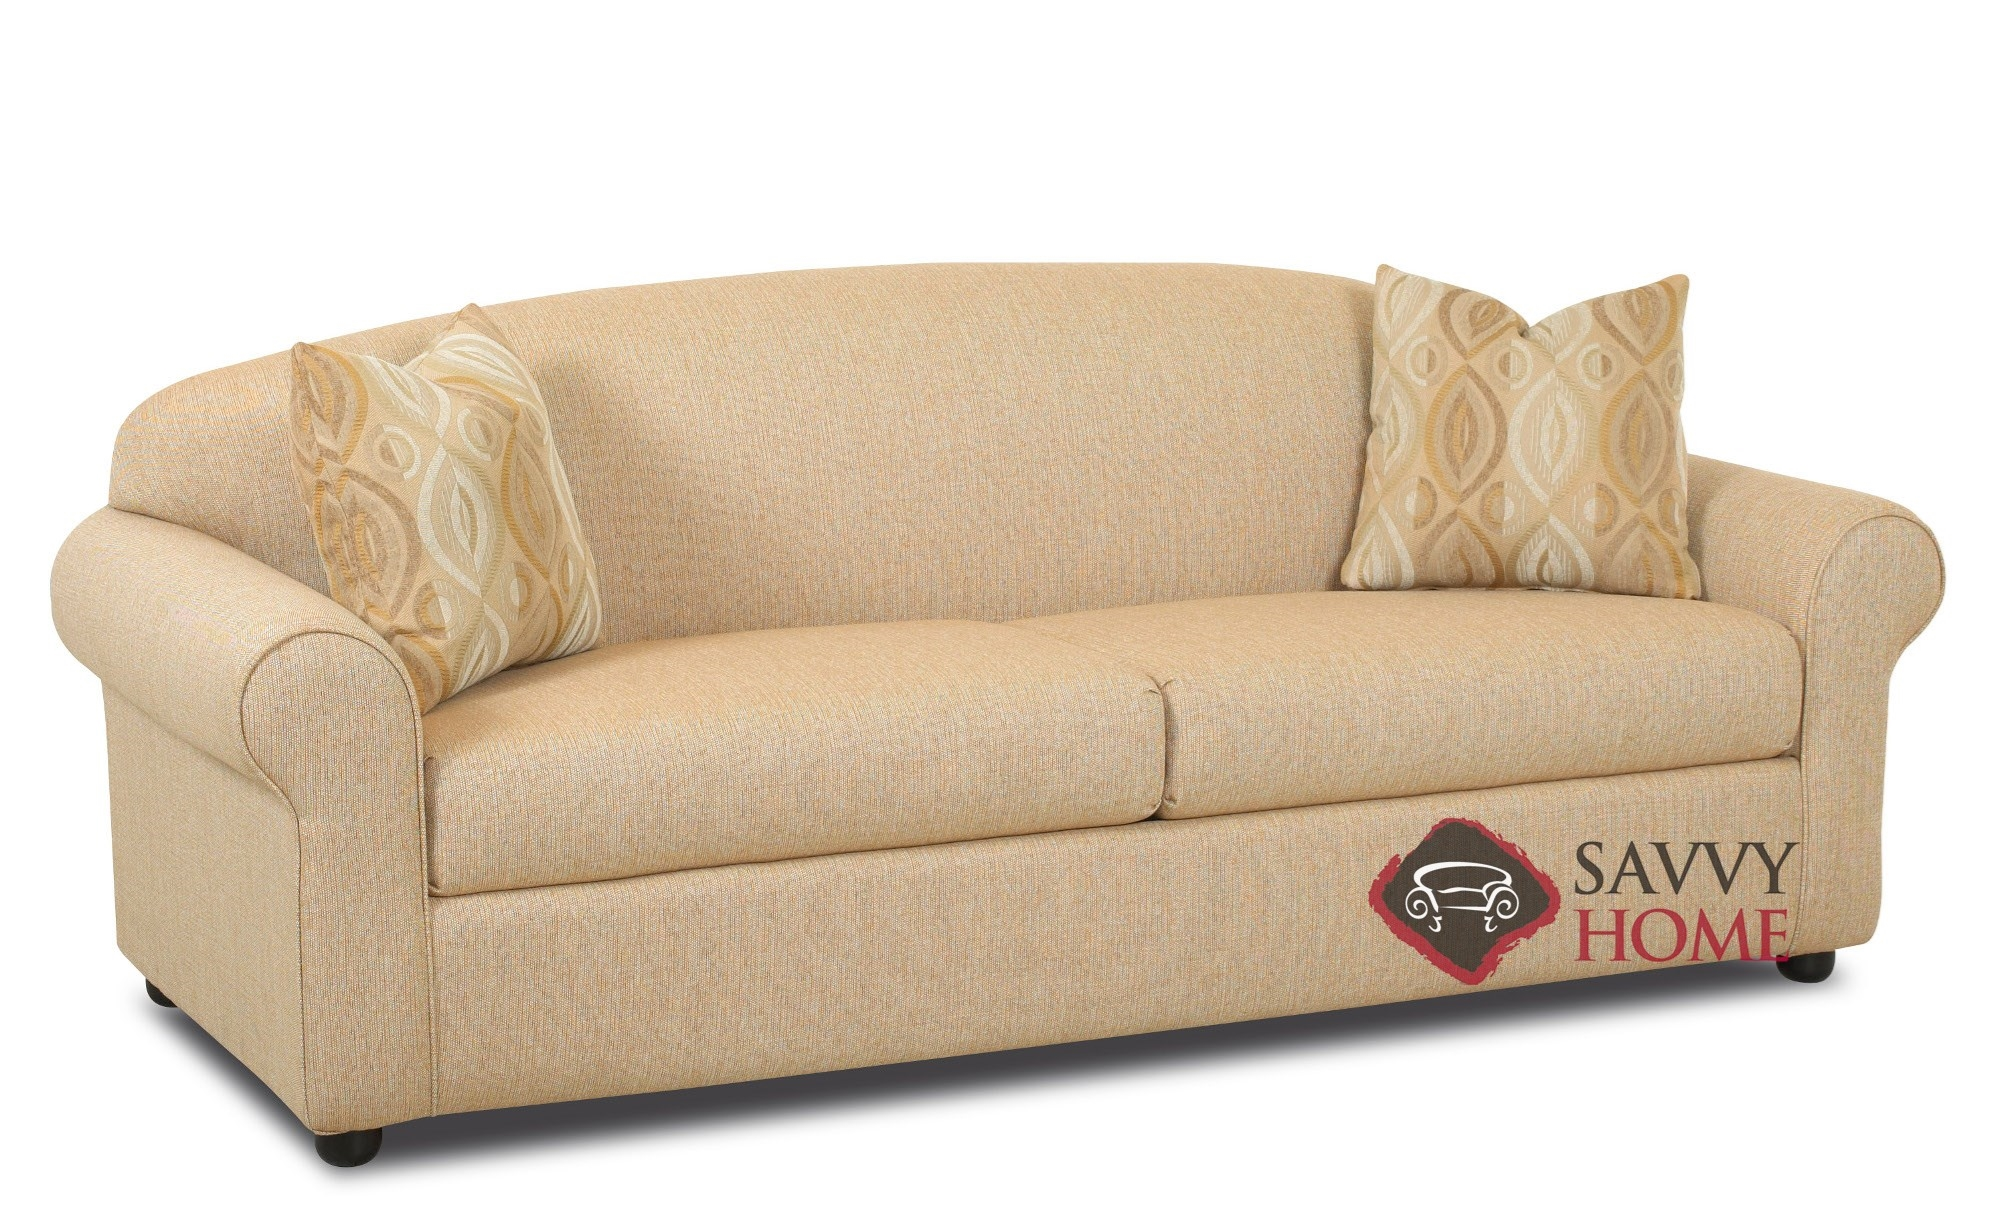 sofa sleeper chicago top rated 2018 fabric sofas queen by savvy is fully